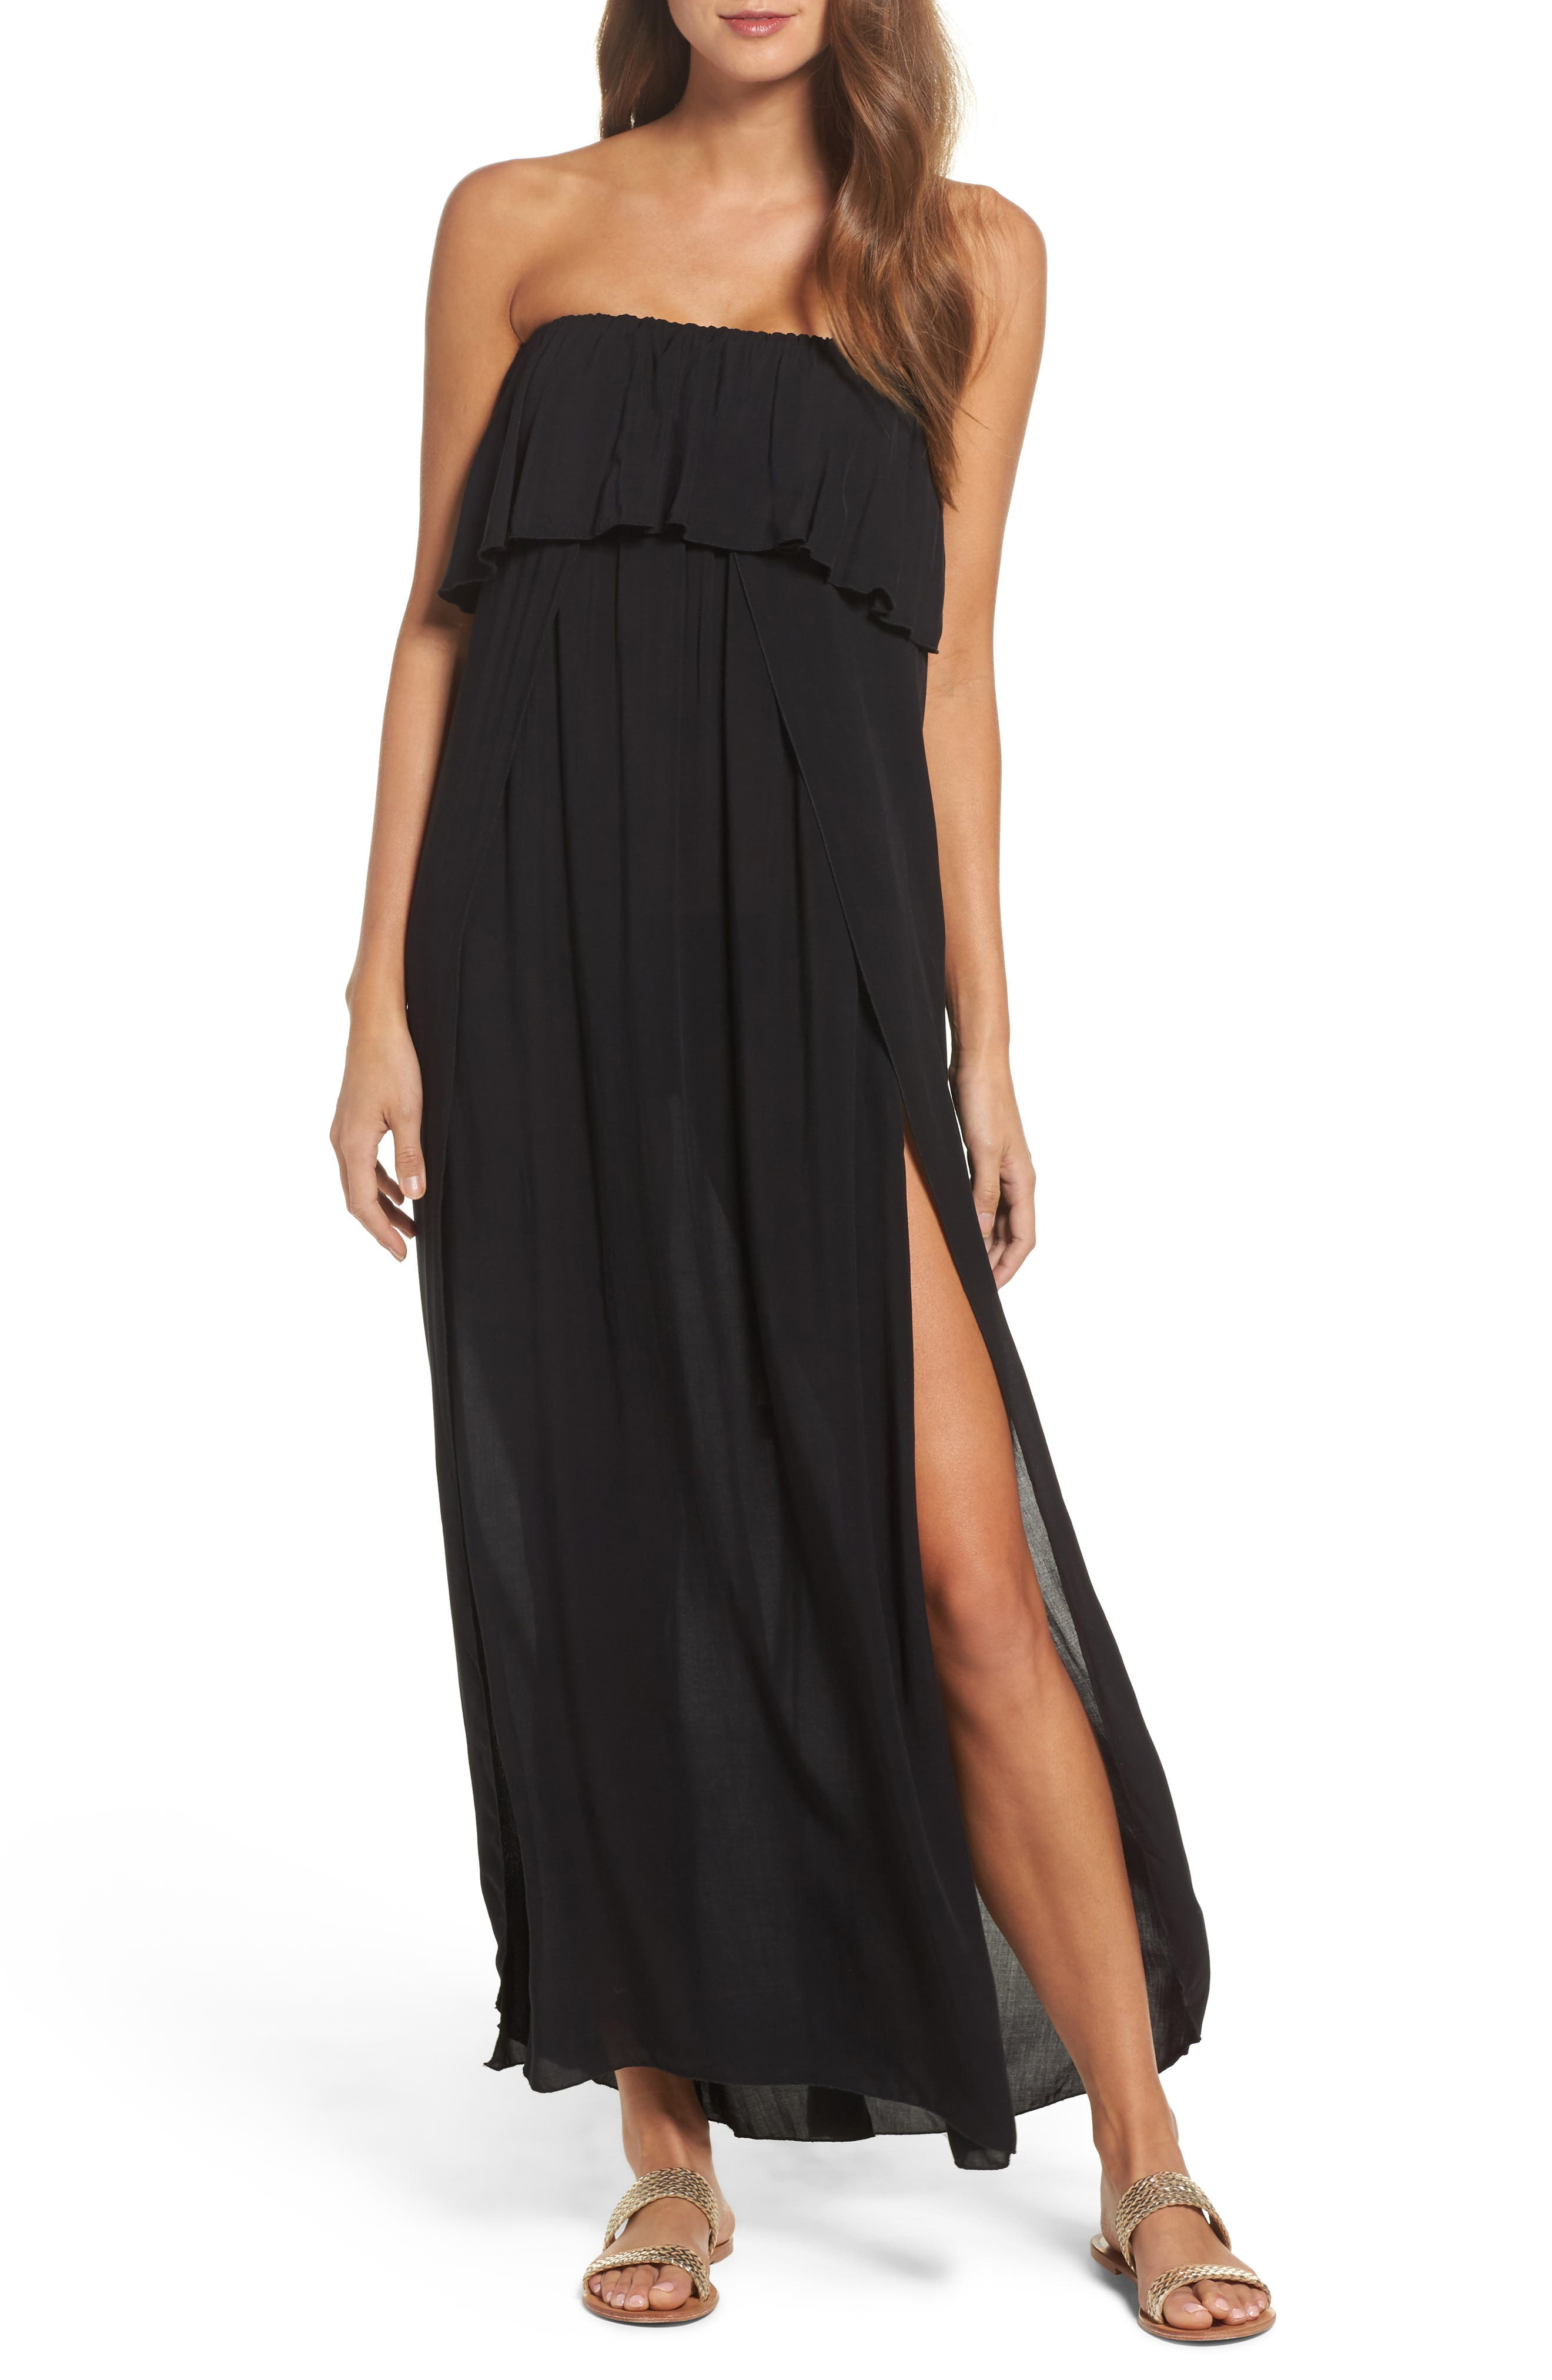 Alternate Image 1 Selected - Elan Strapless Maxi Cover-Up Dress